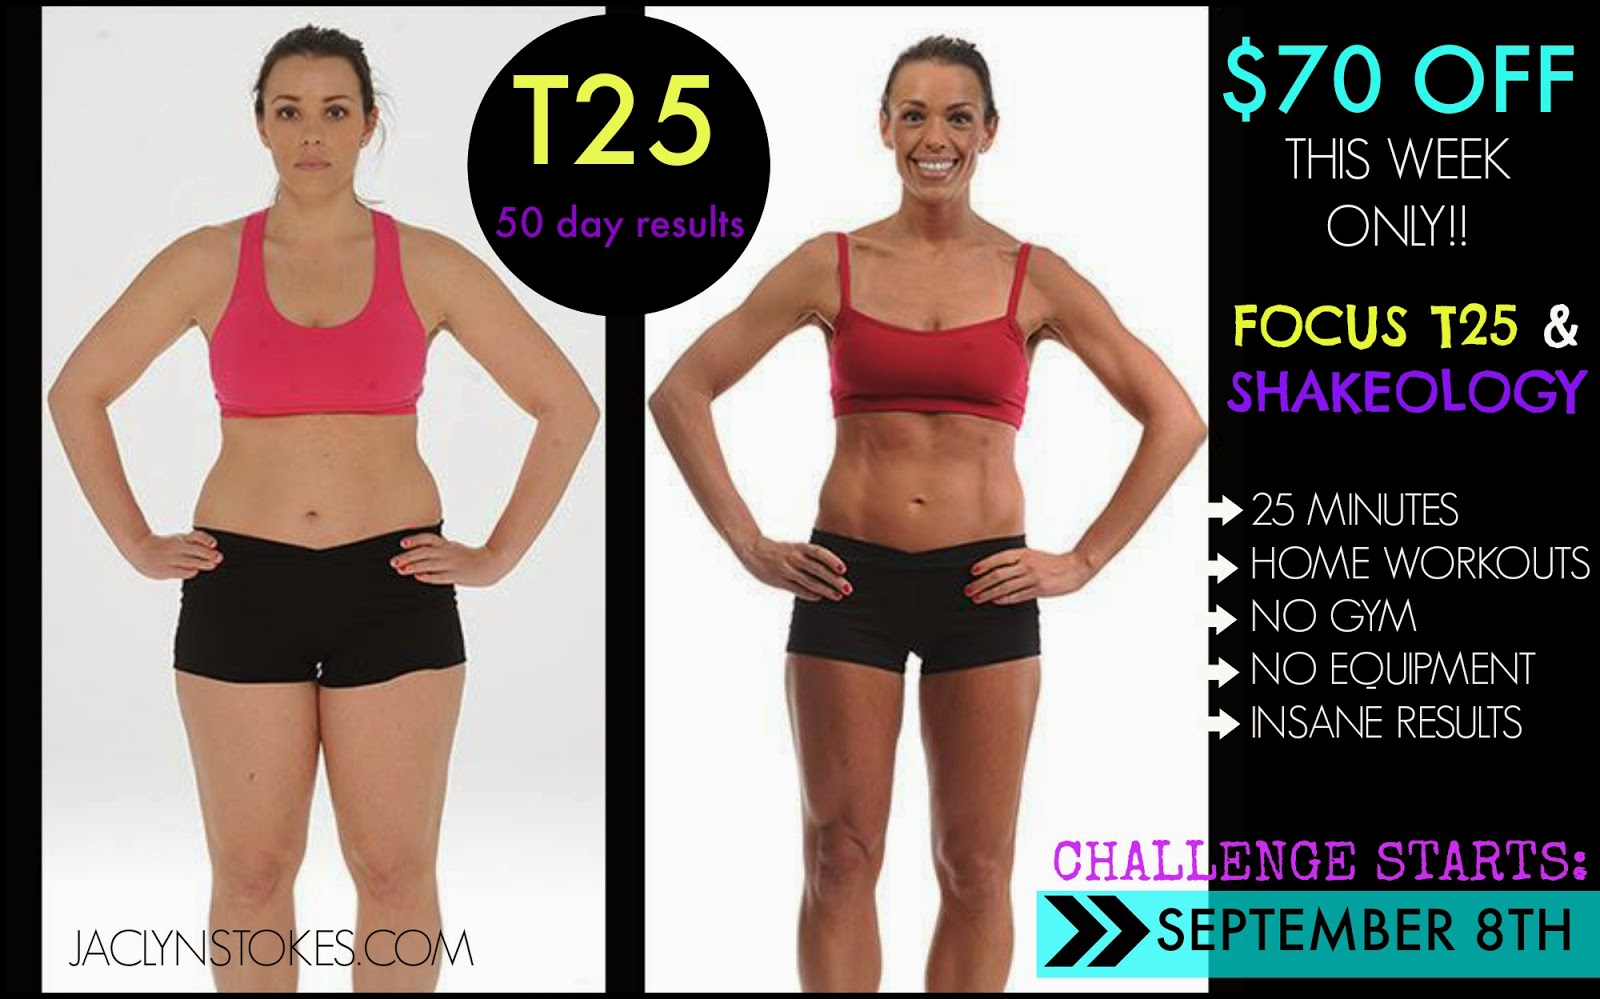 Focus T25 results, T25 sale, T25 promotion, Beachbody promotion